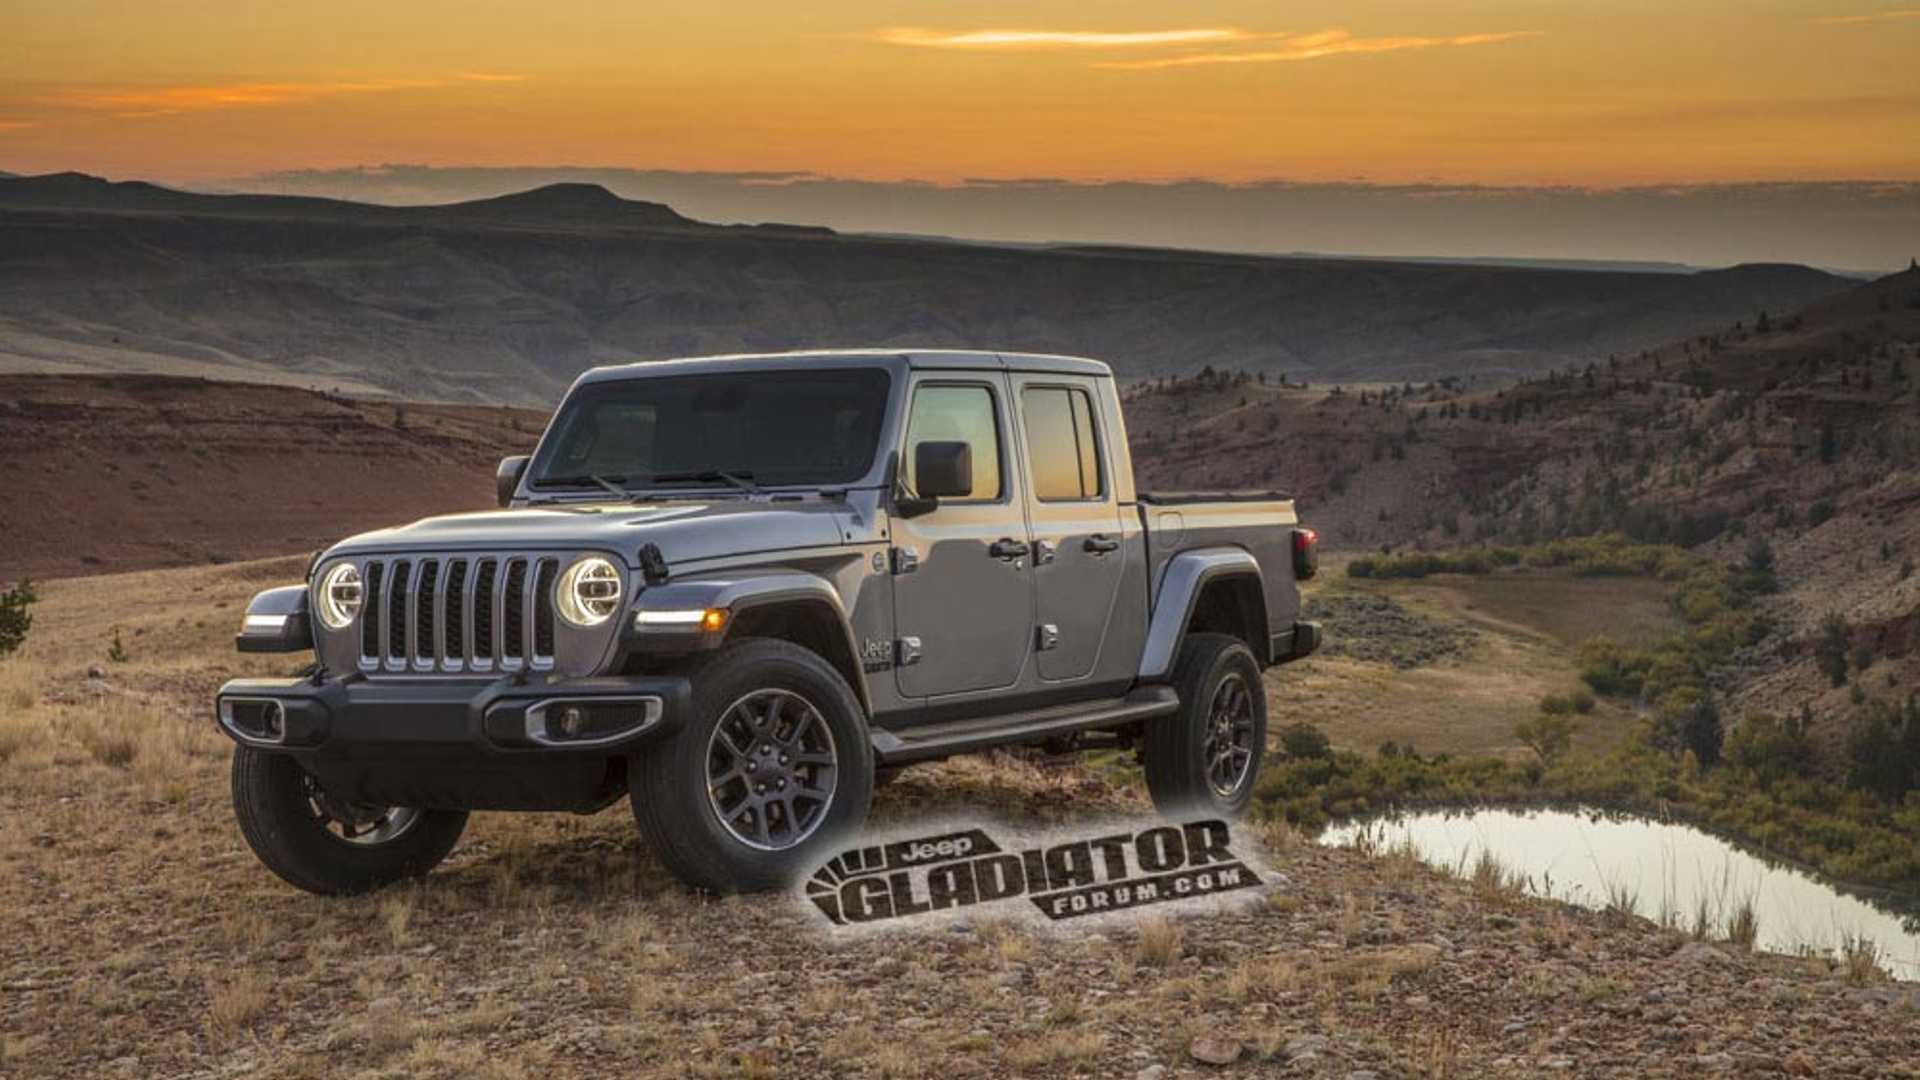 61 Concept of Jeep Gladiator Images 2020 Exterior for Jeep Gladiator Images 2020